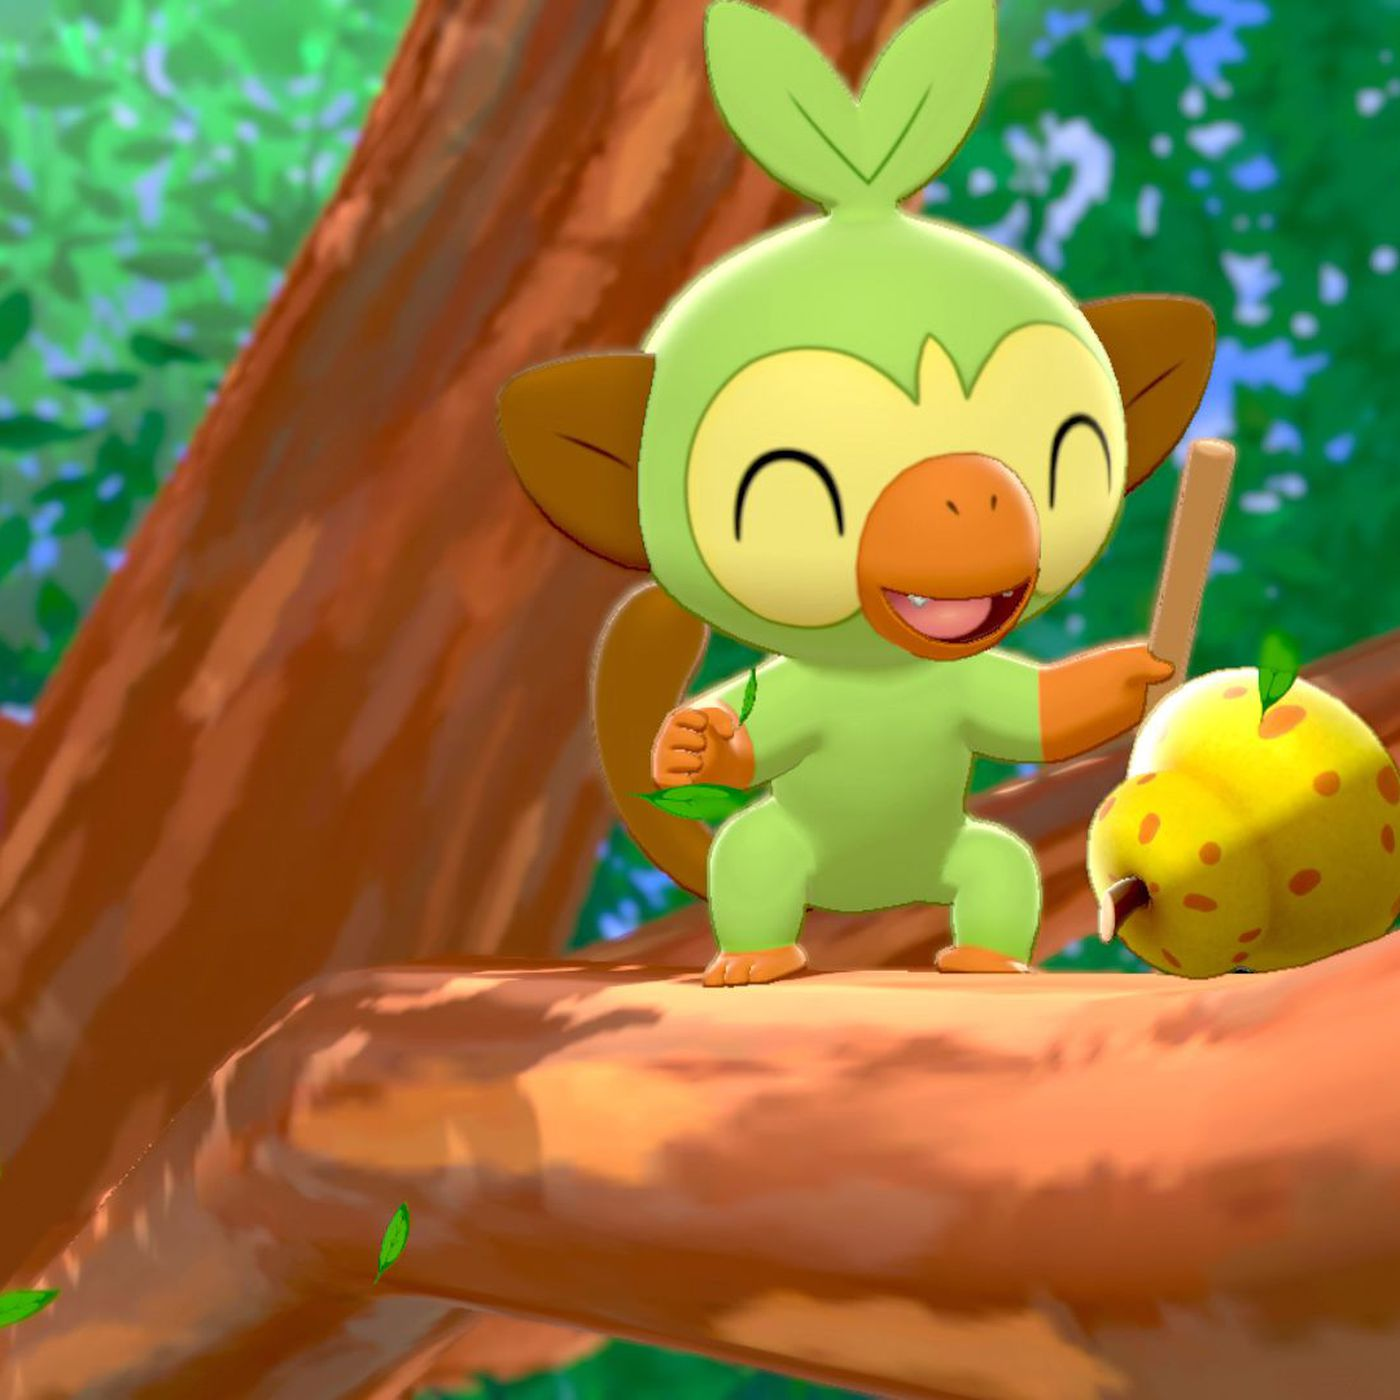 Pokemon Sword And Shield S Limited Pokedex Is A Huge Deal To Fans